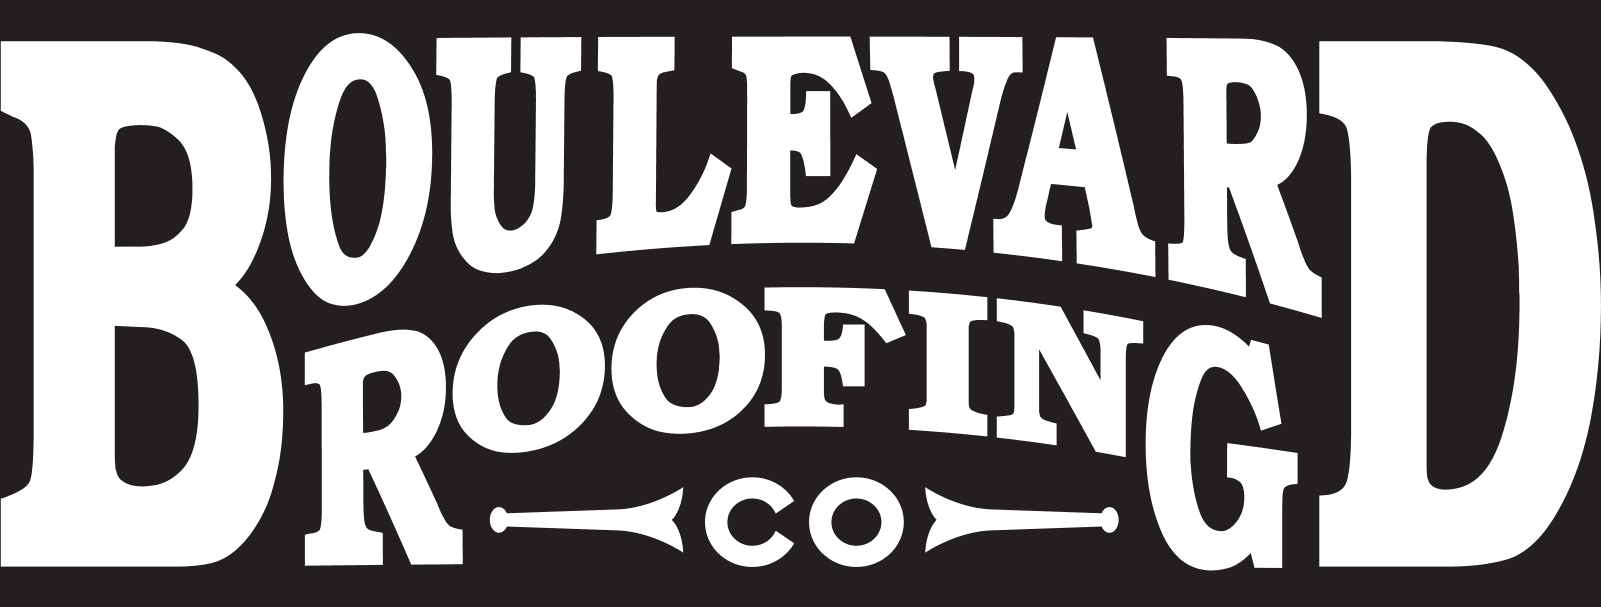 Boulevard Roofing Co. - logo